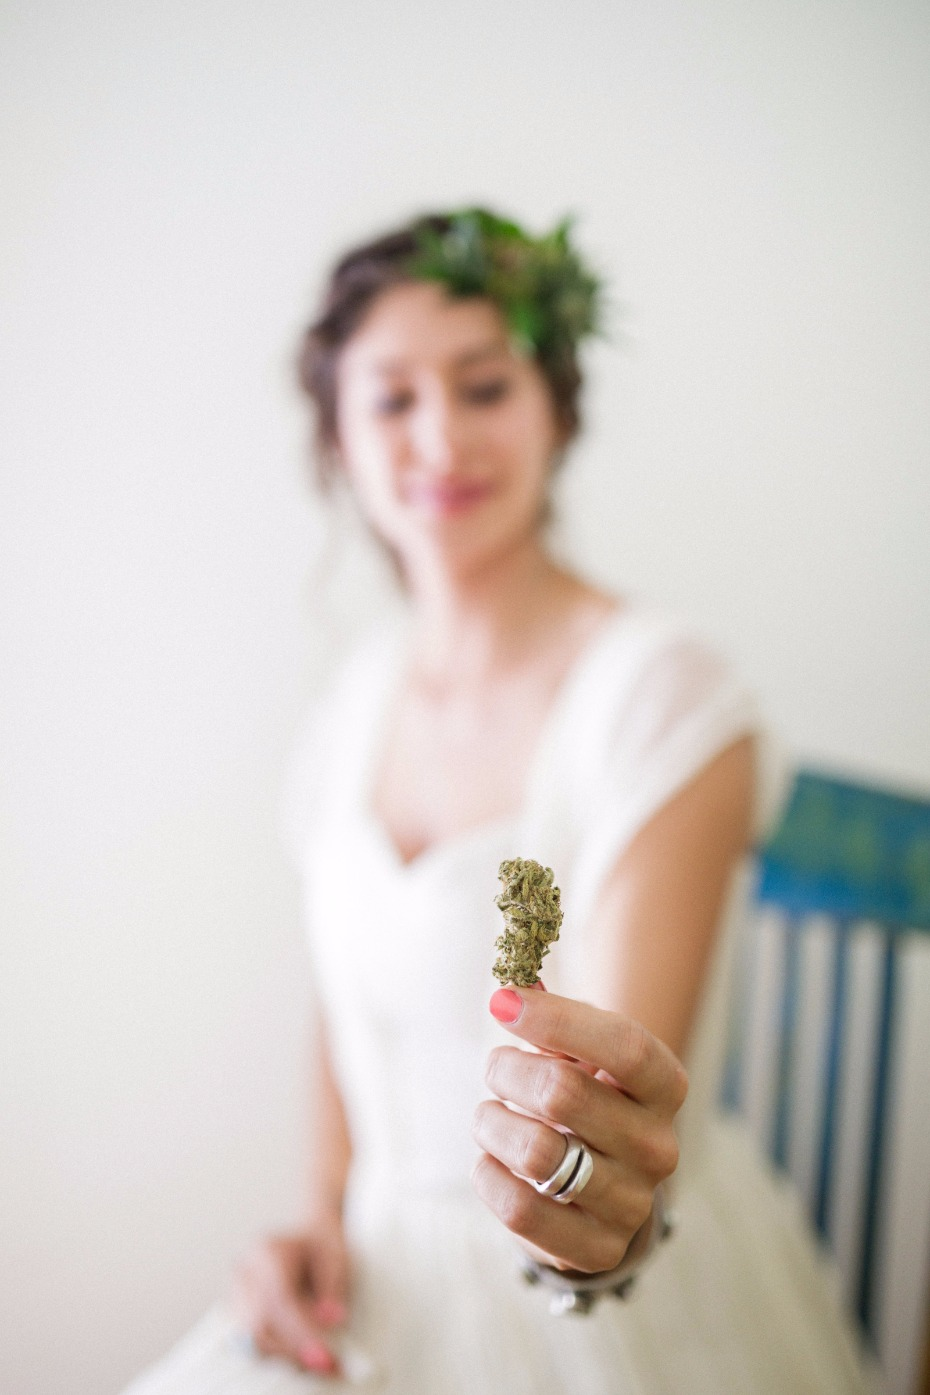 The cannabis bride and her little bud